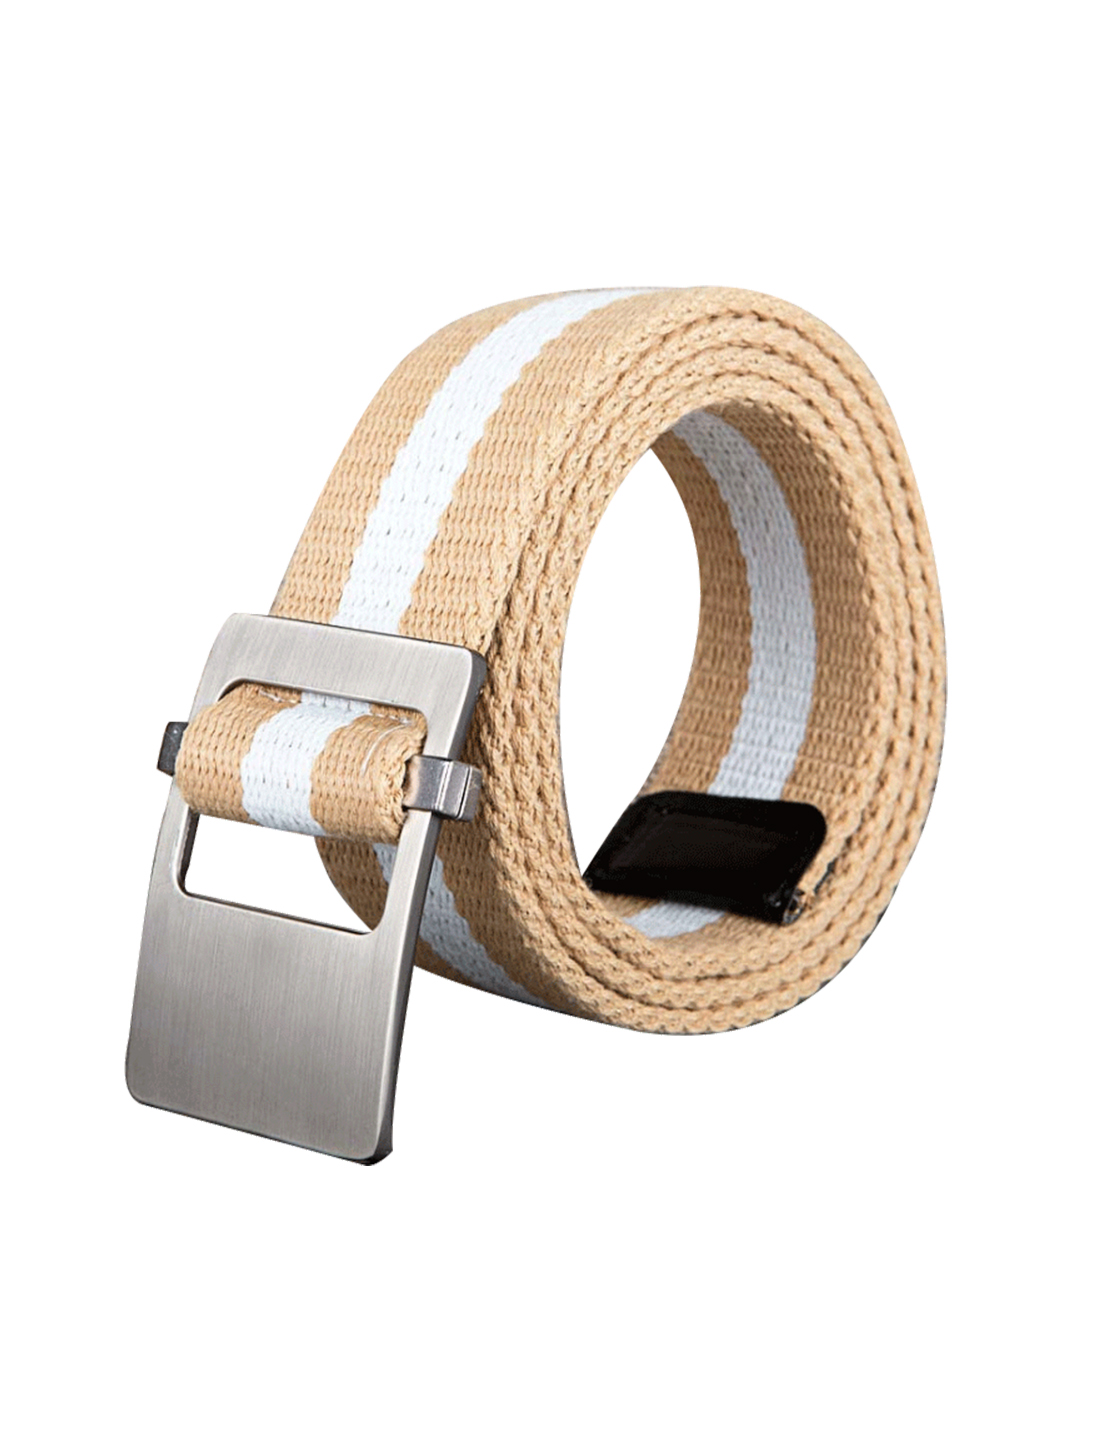 Unisex Canvas Adjustable Holeless Flat Metal Buckle Stripe Belt Khaki